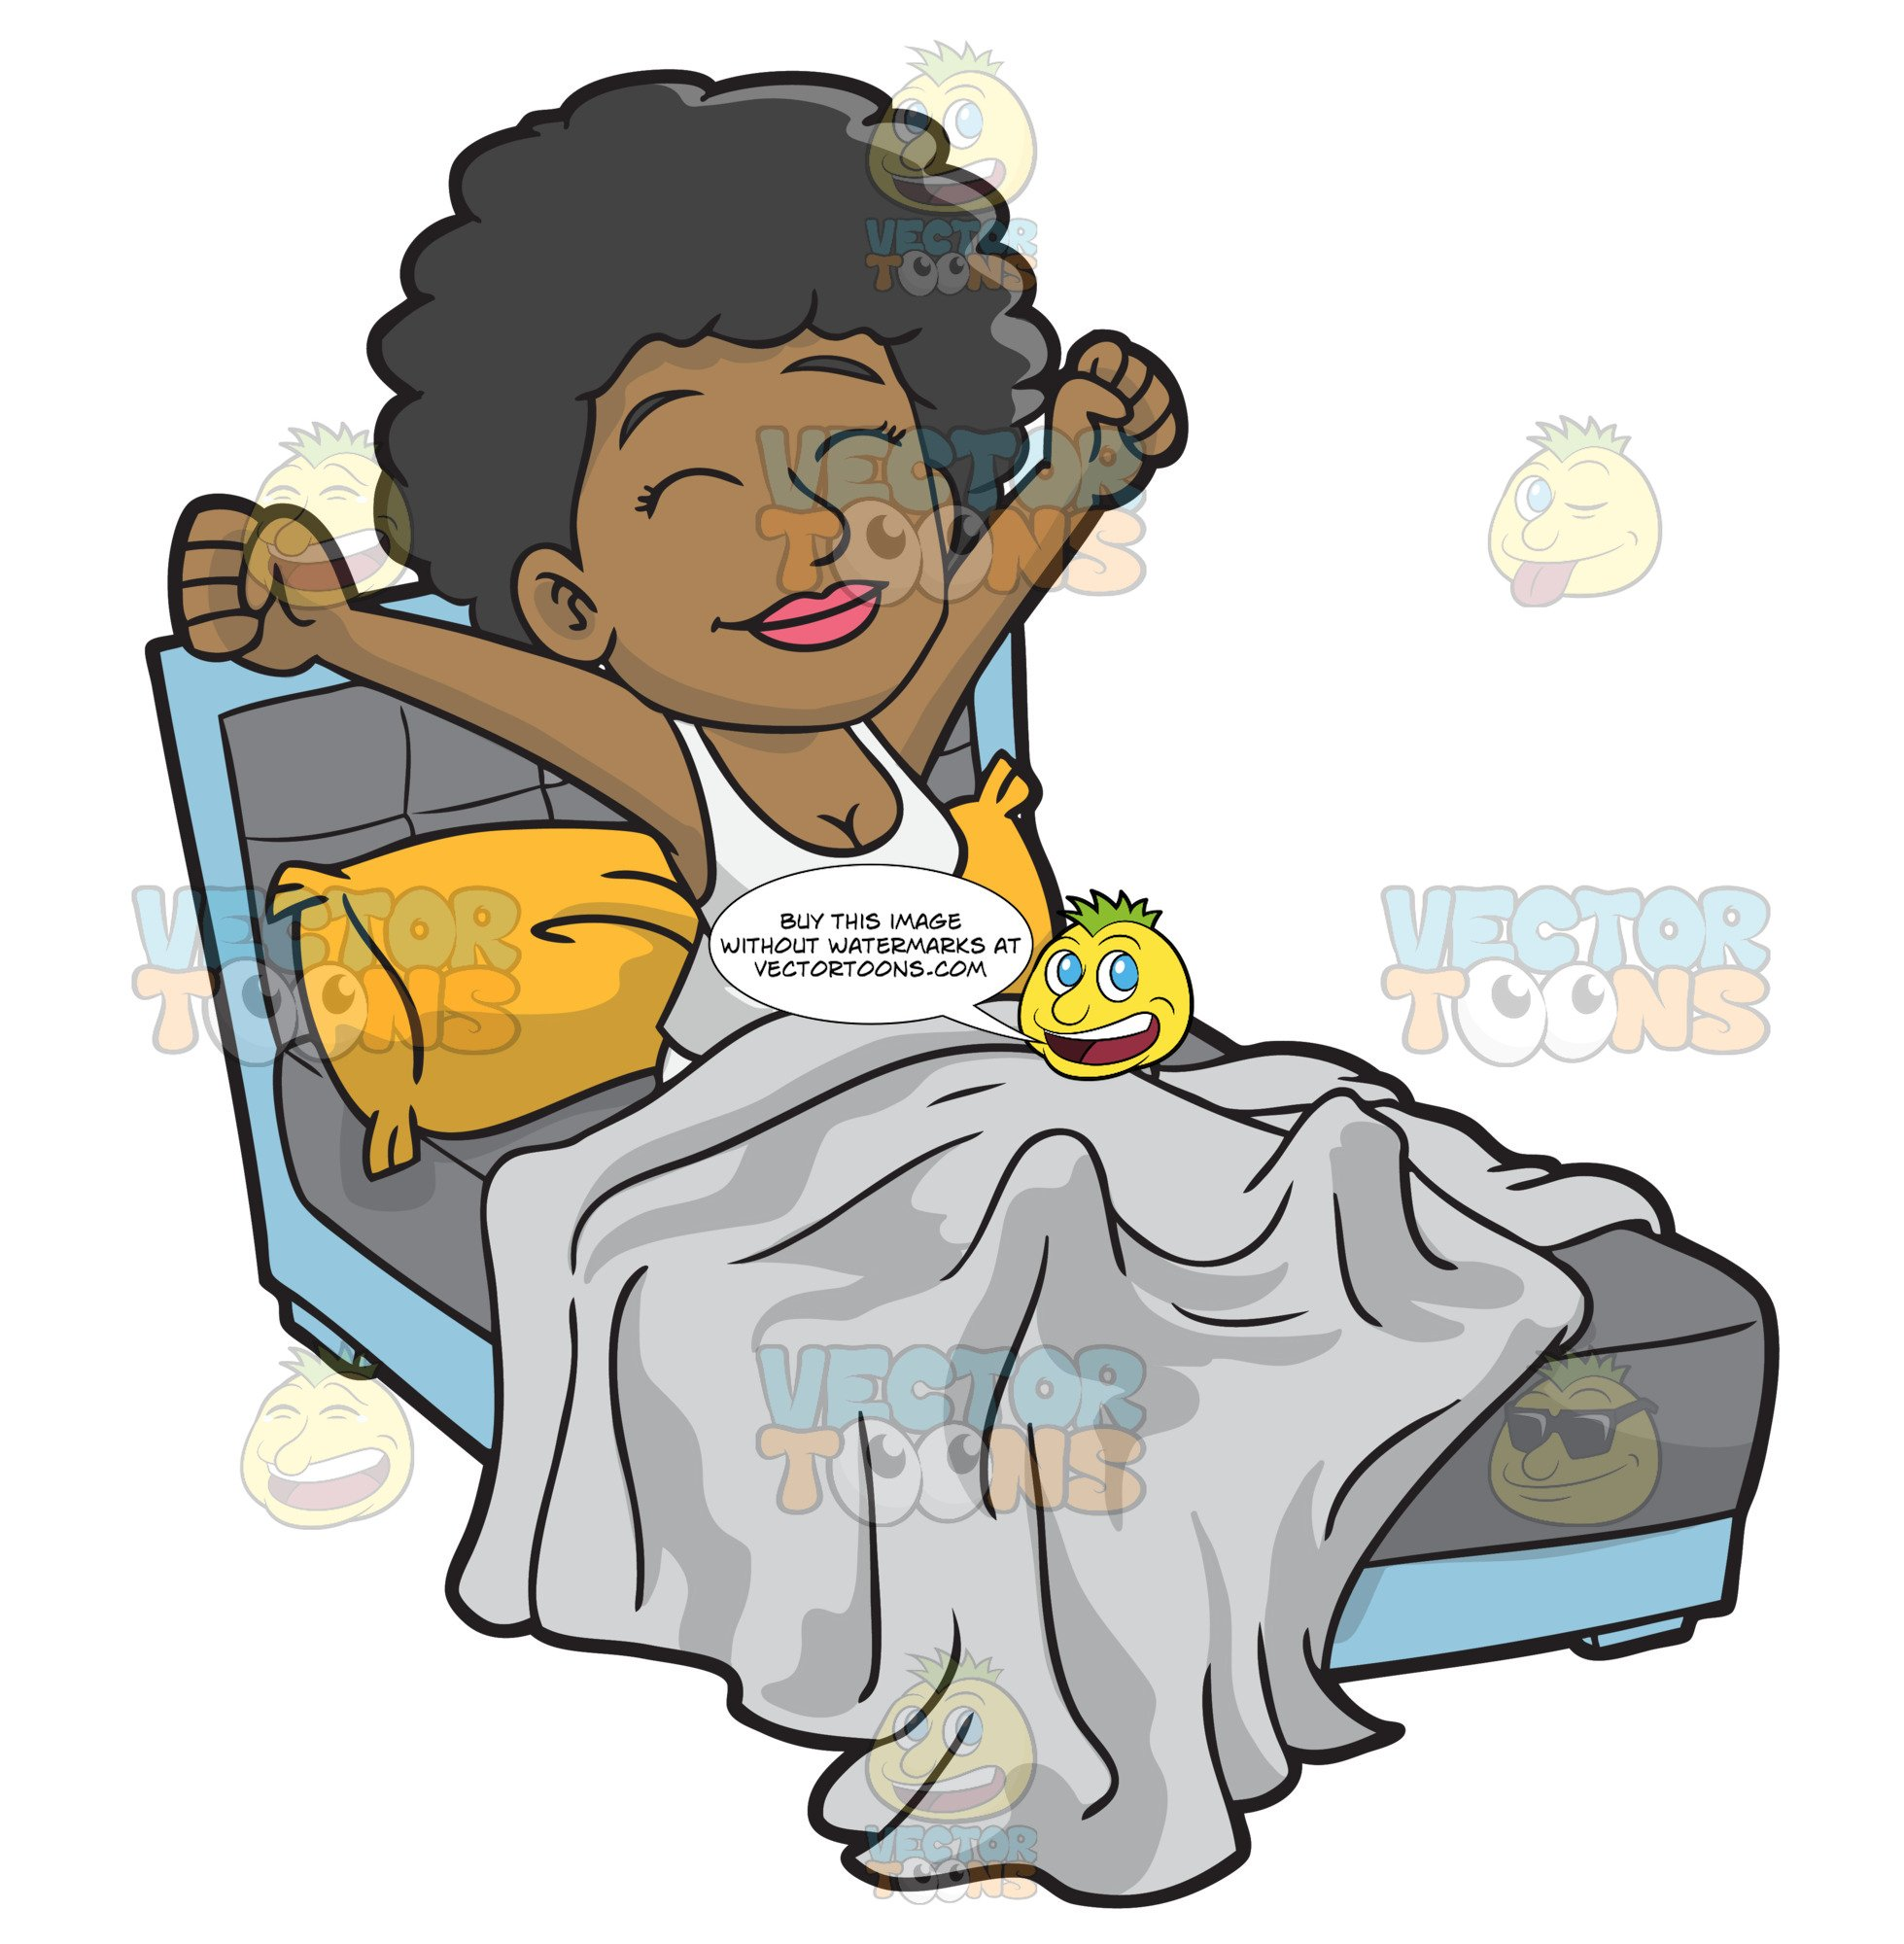 graphic freeuse download A happy black woman. Waking clipart morning person.